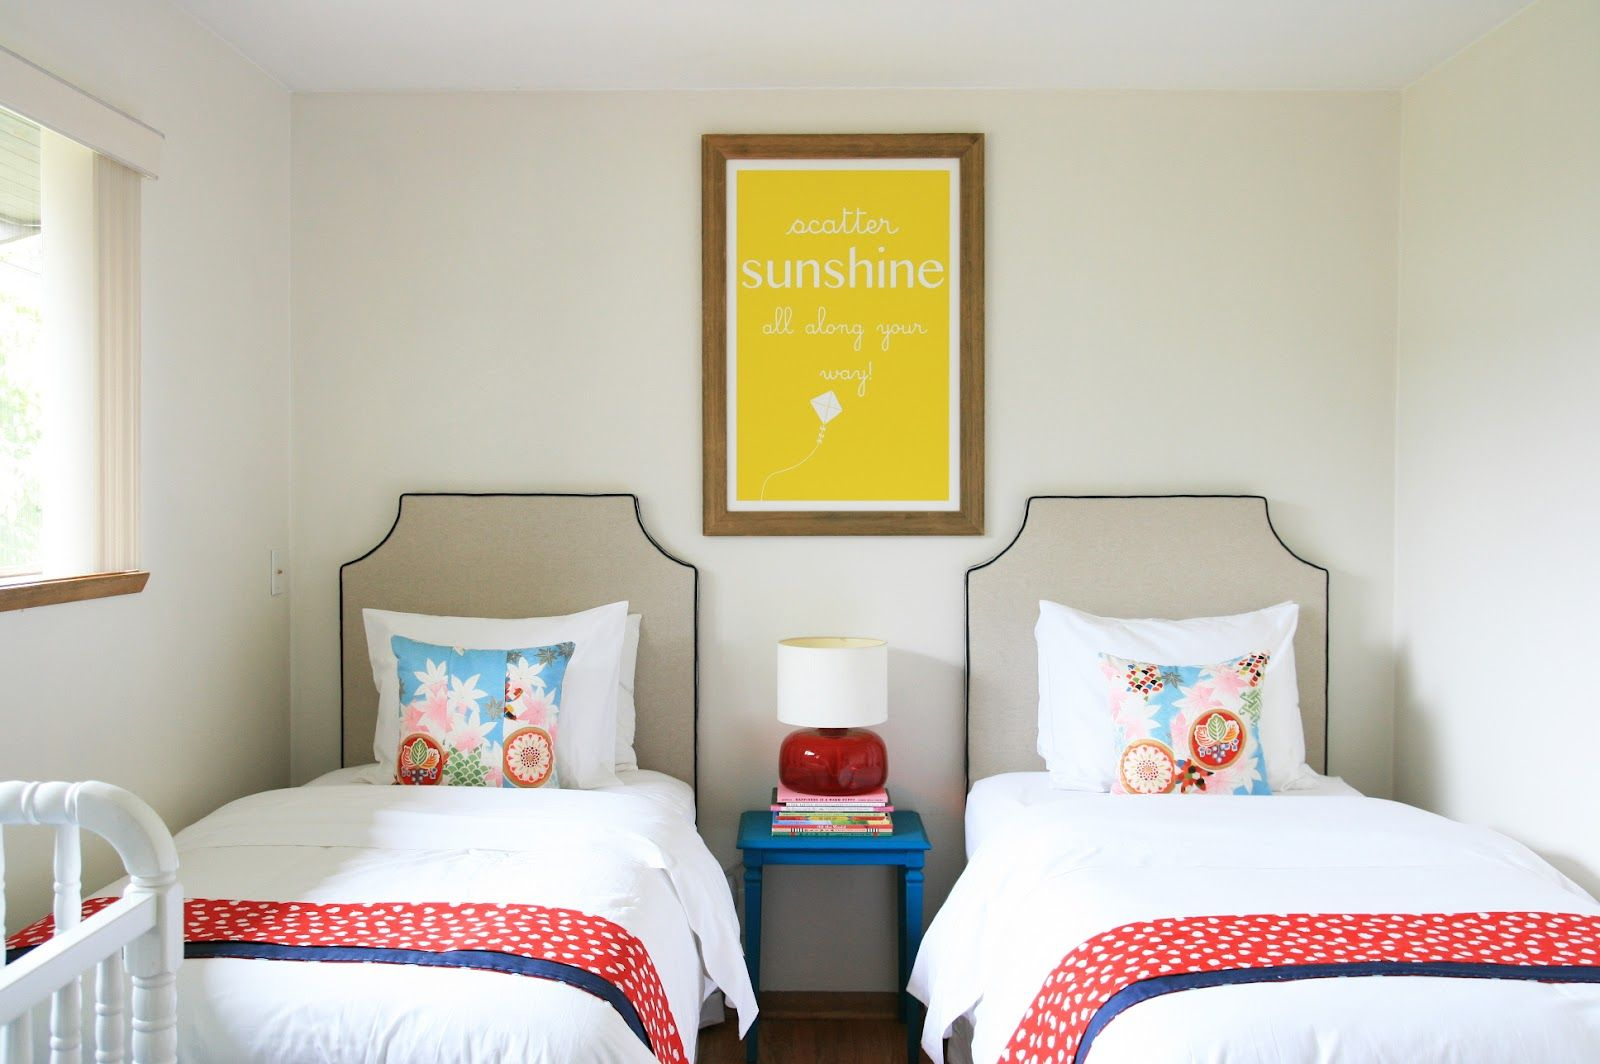 Stephmodo Beautiful Shared Bedroom For 2 Girls A Boy Modern Kids Bedroom Kids Shared Bedroom Boy And Girl Shared Room